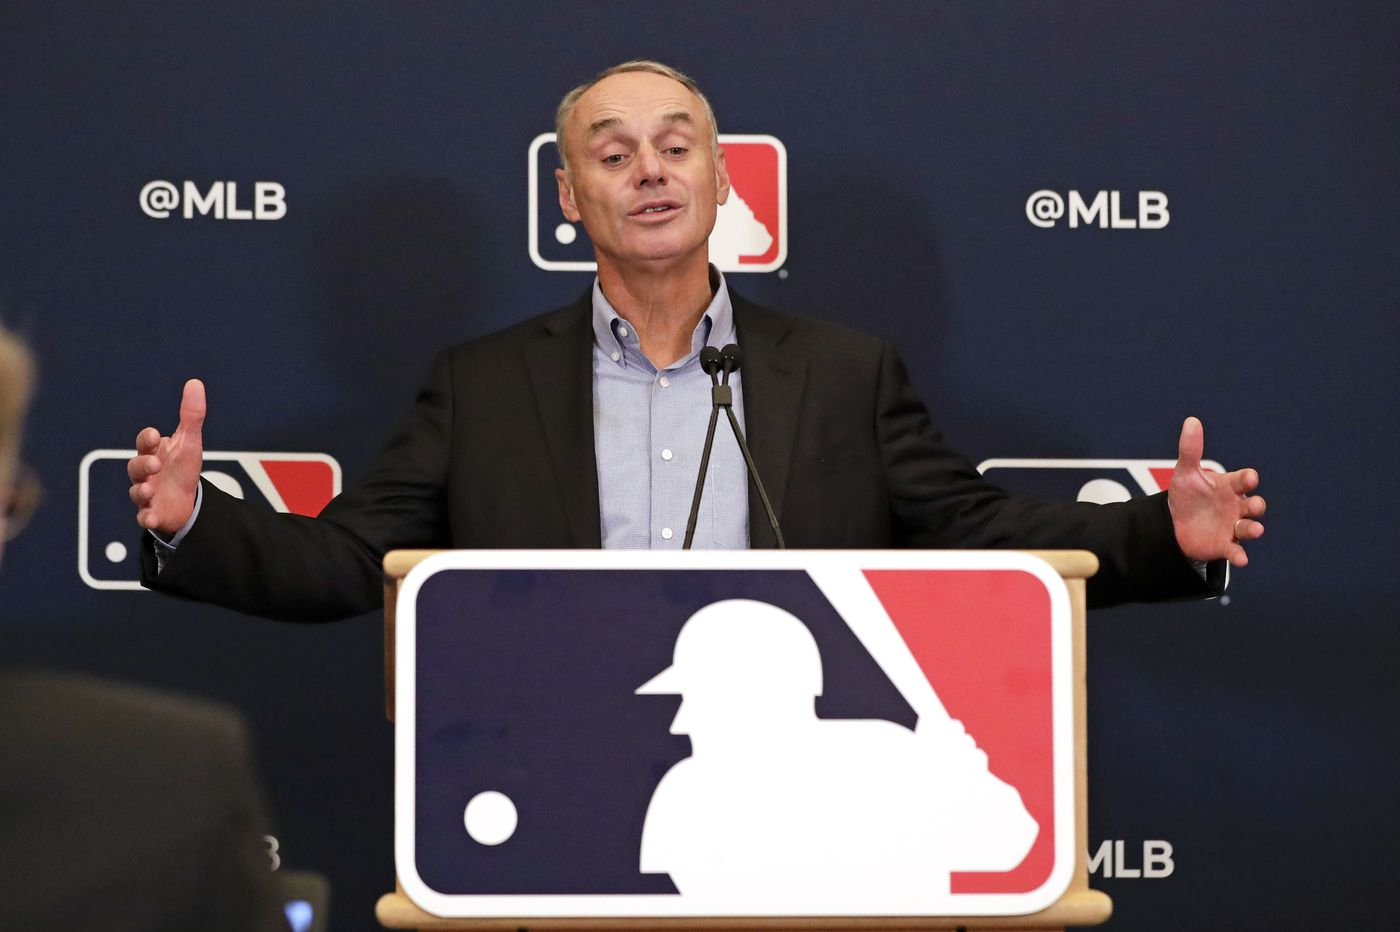 MLB commissioner Rob Manfred: 'We're going to play baseball in 2020'